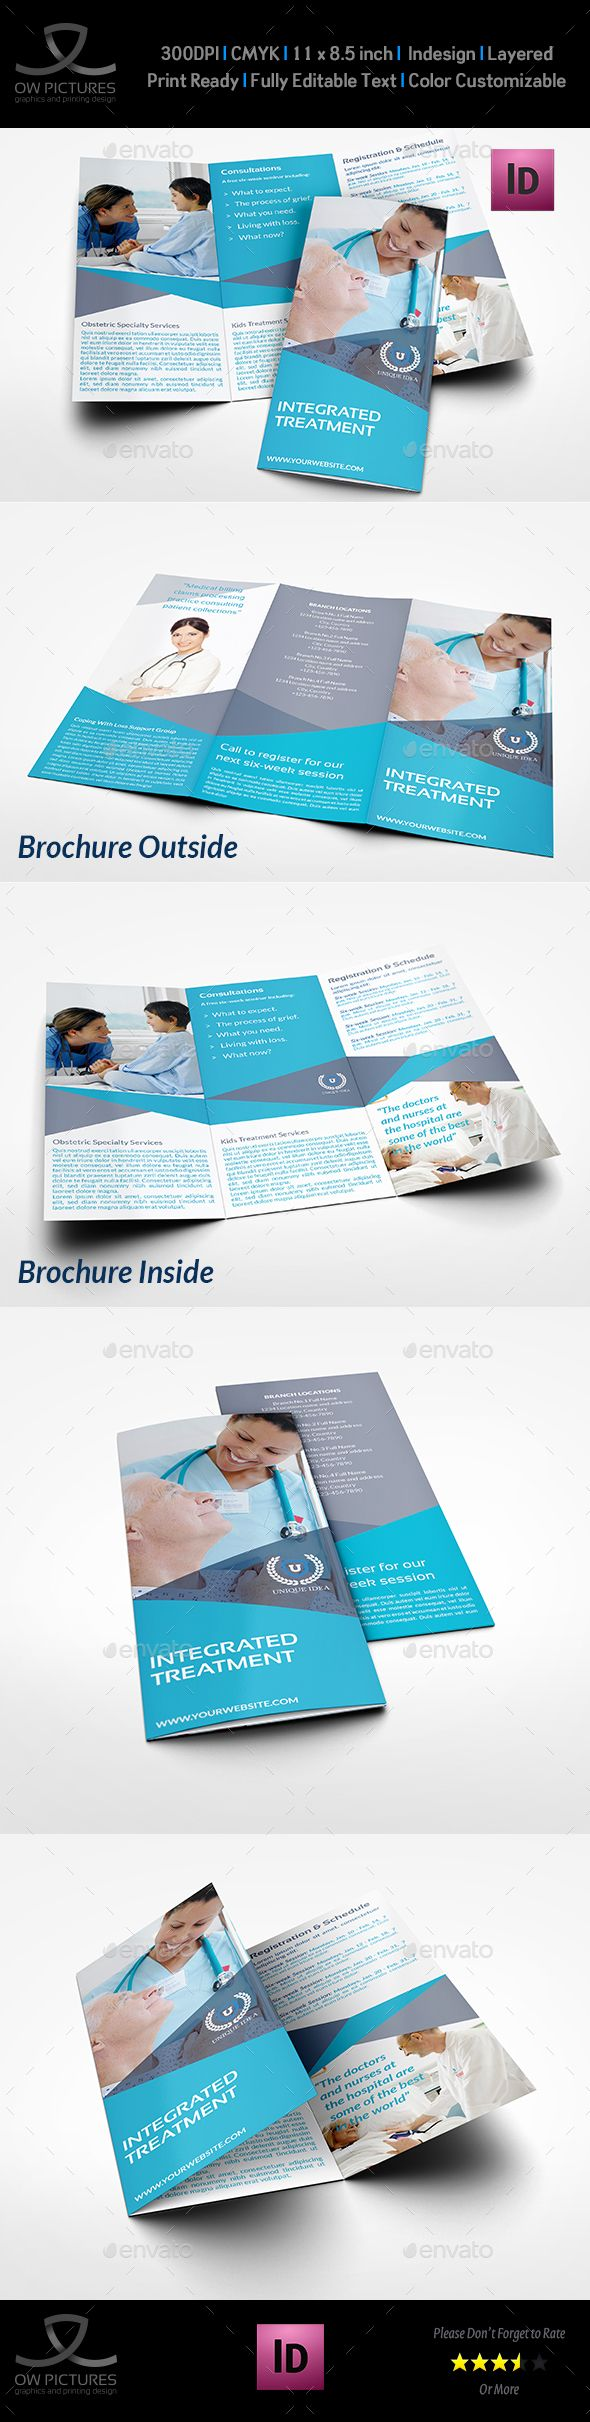 Medical Care Tri-Fold Brochure Template InDesign INDD. Download here: http://graphicriver.net/item/medical-care-trifold-brochure-template/16152816?ref=ksioks